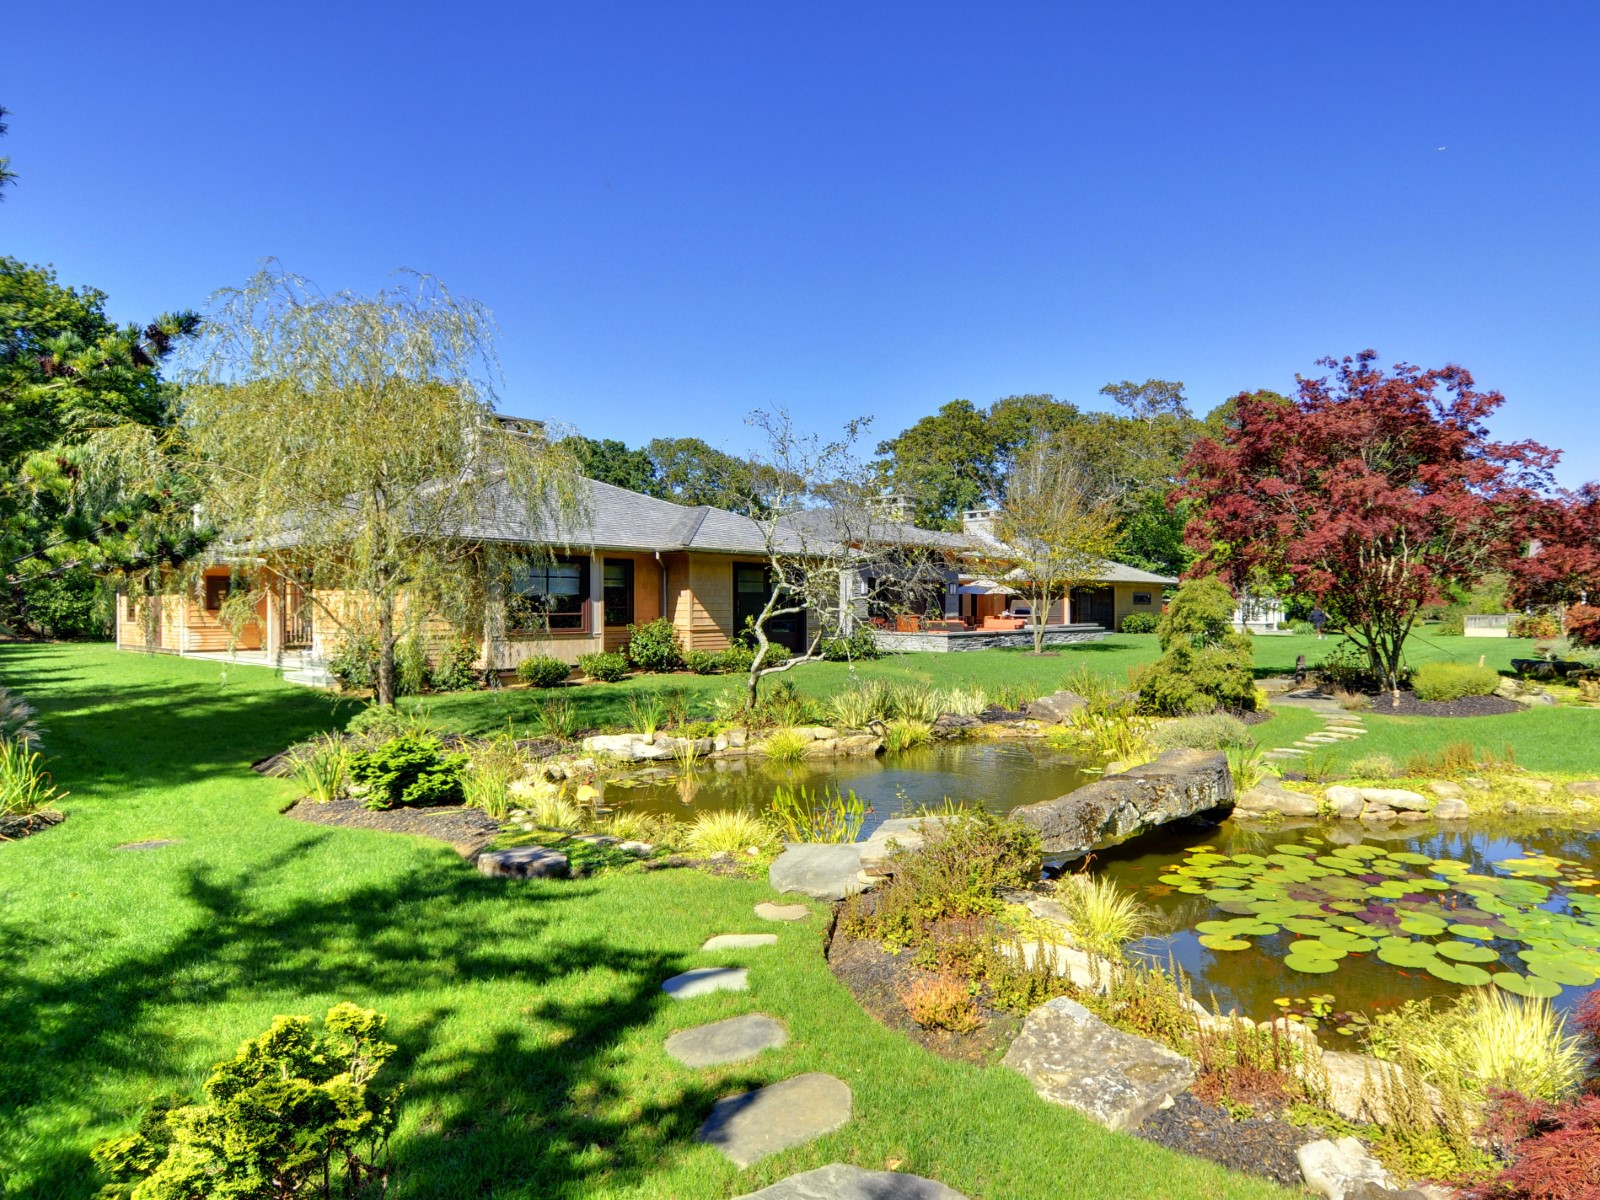 Single Family Home for Rent at East Hampton Village East Hampton Village, East Hampton, New York 11937 United States